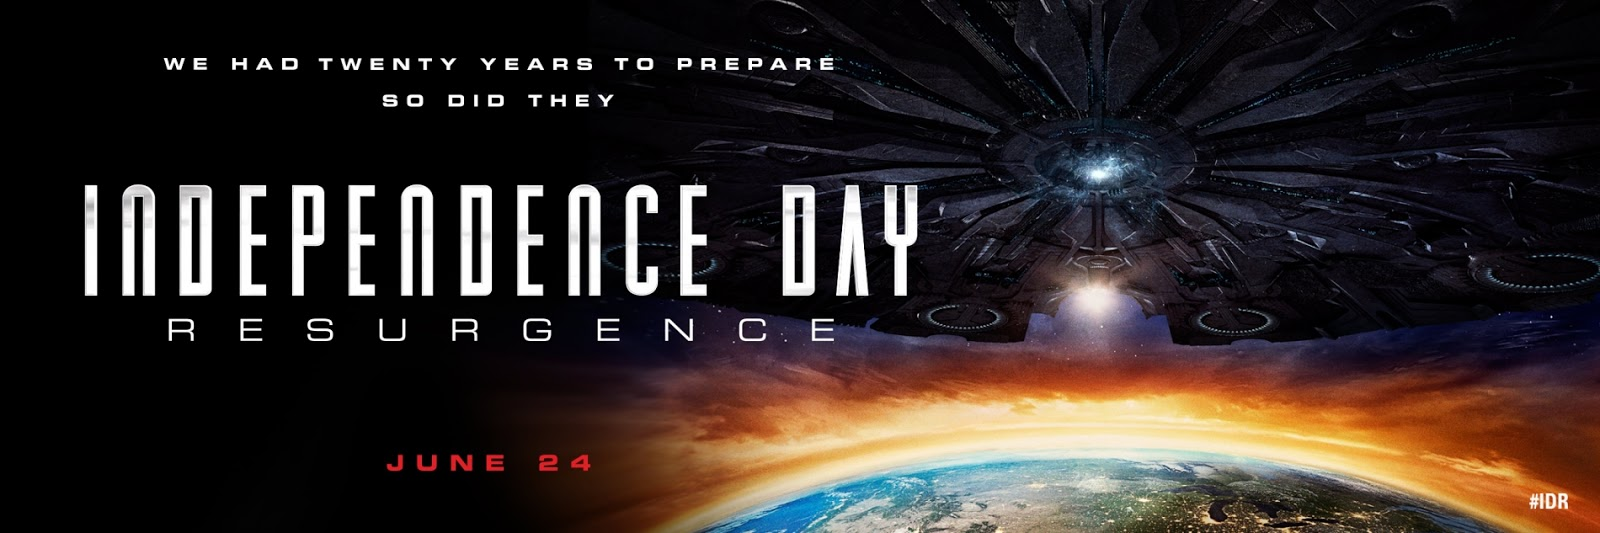 Omg Signature Independence Day Resurgence 2016 American Science Fiction Film